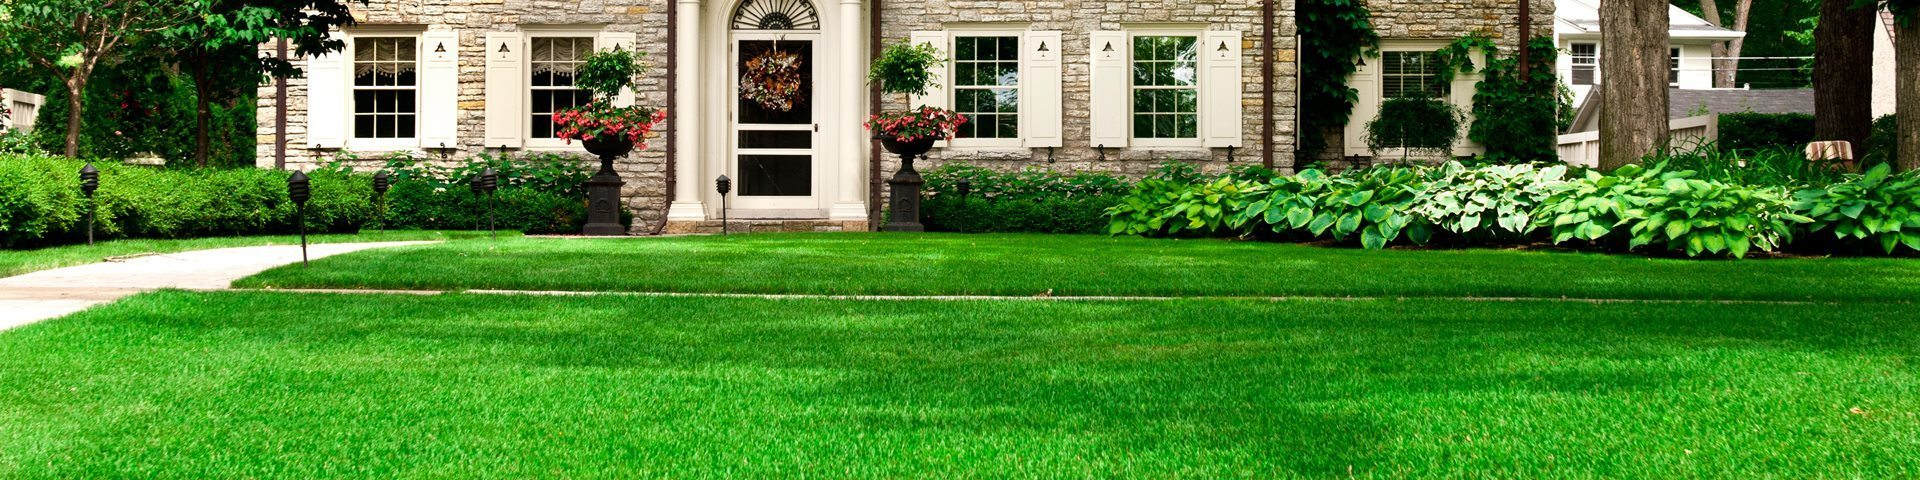 Lawn Maintenance - Perfectly maintained front lawn and garden